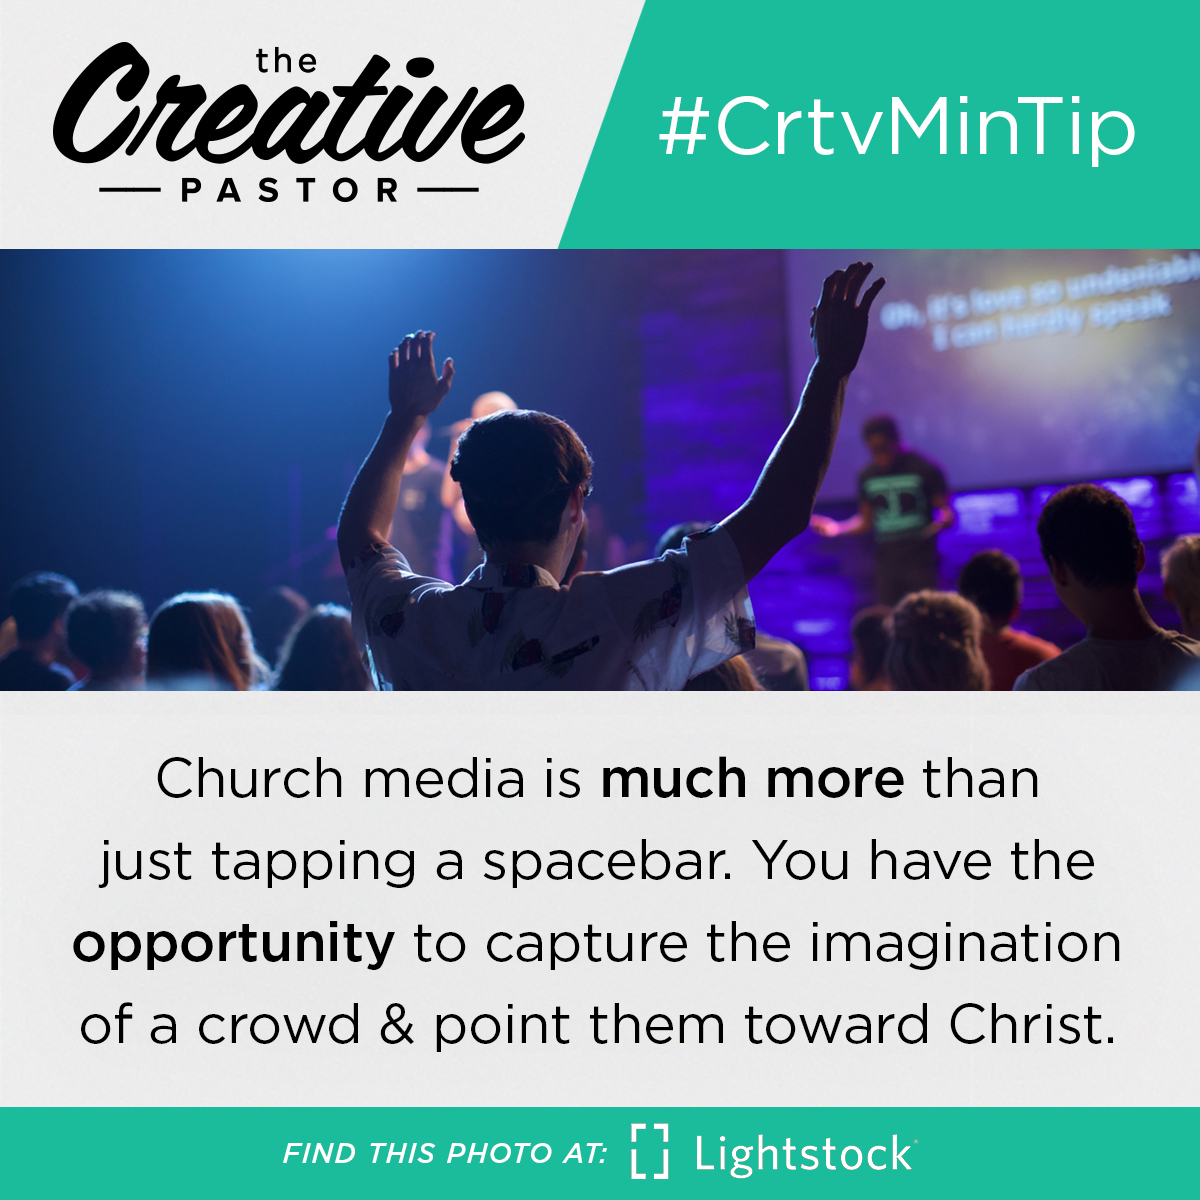 #CrtvMinTip: Church media is much more than just tapping a spacebar. You have the opportunity to capture the imagination of a crowd and point them toward Christ.